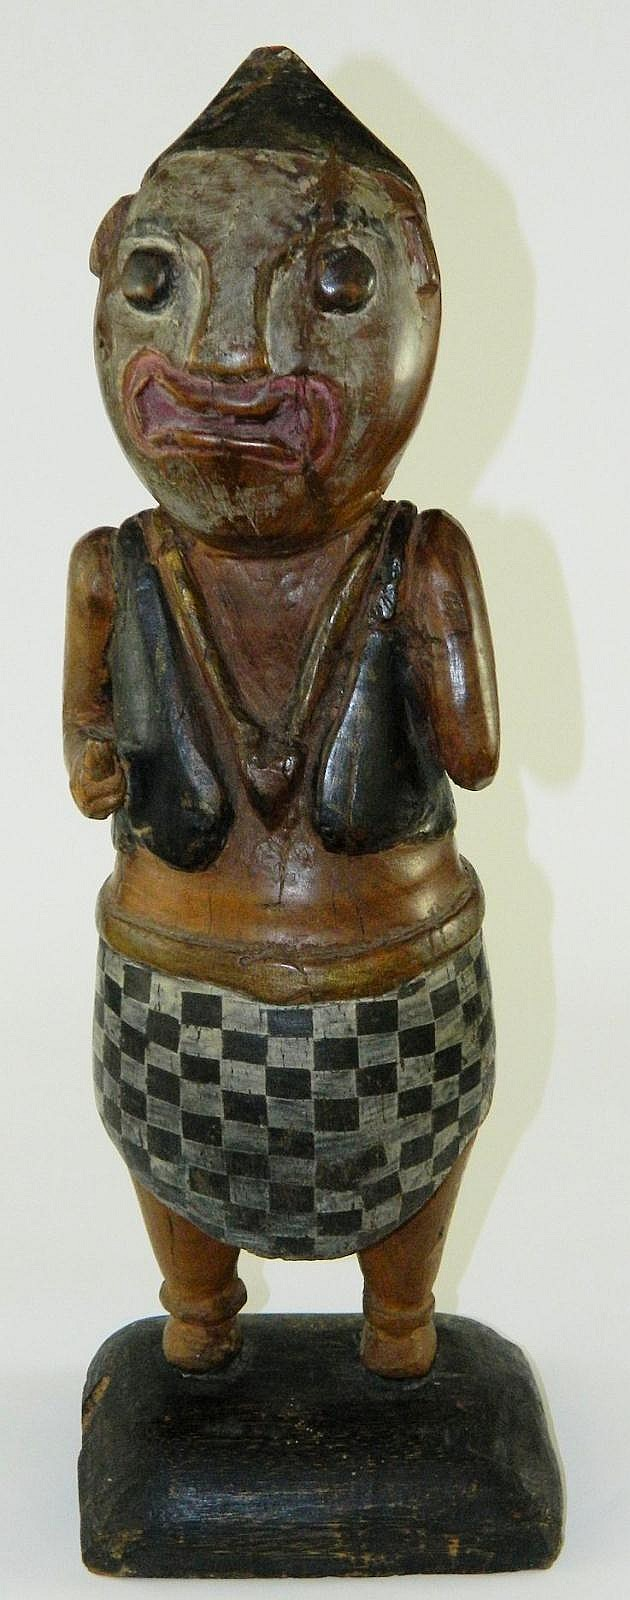 Wood carved and decorated folk art figure